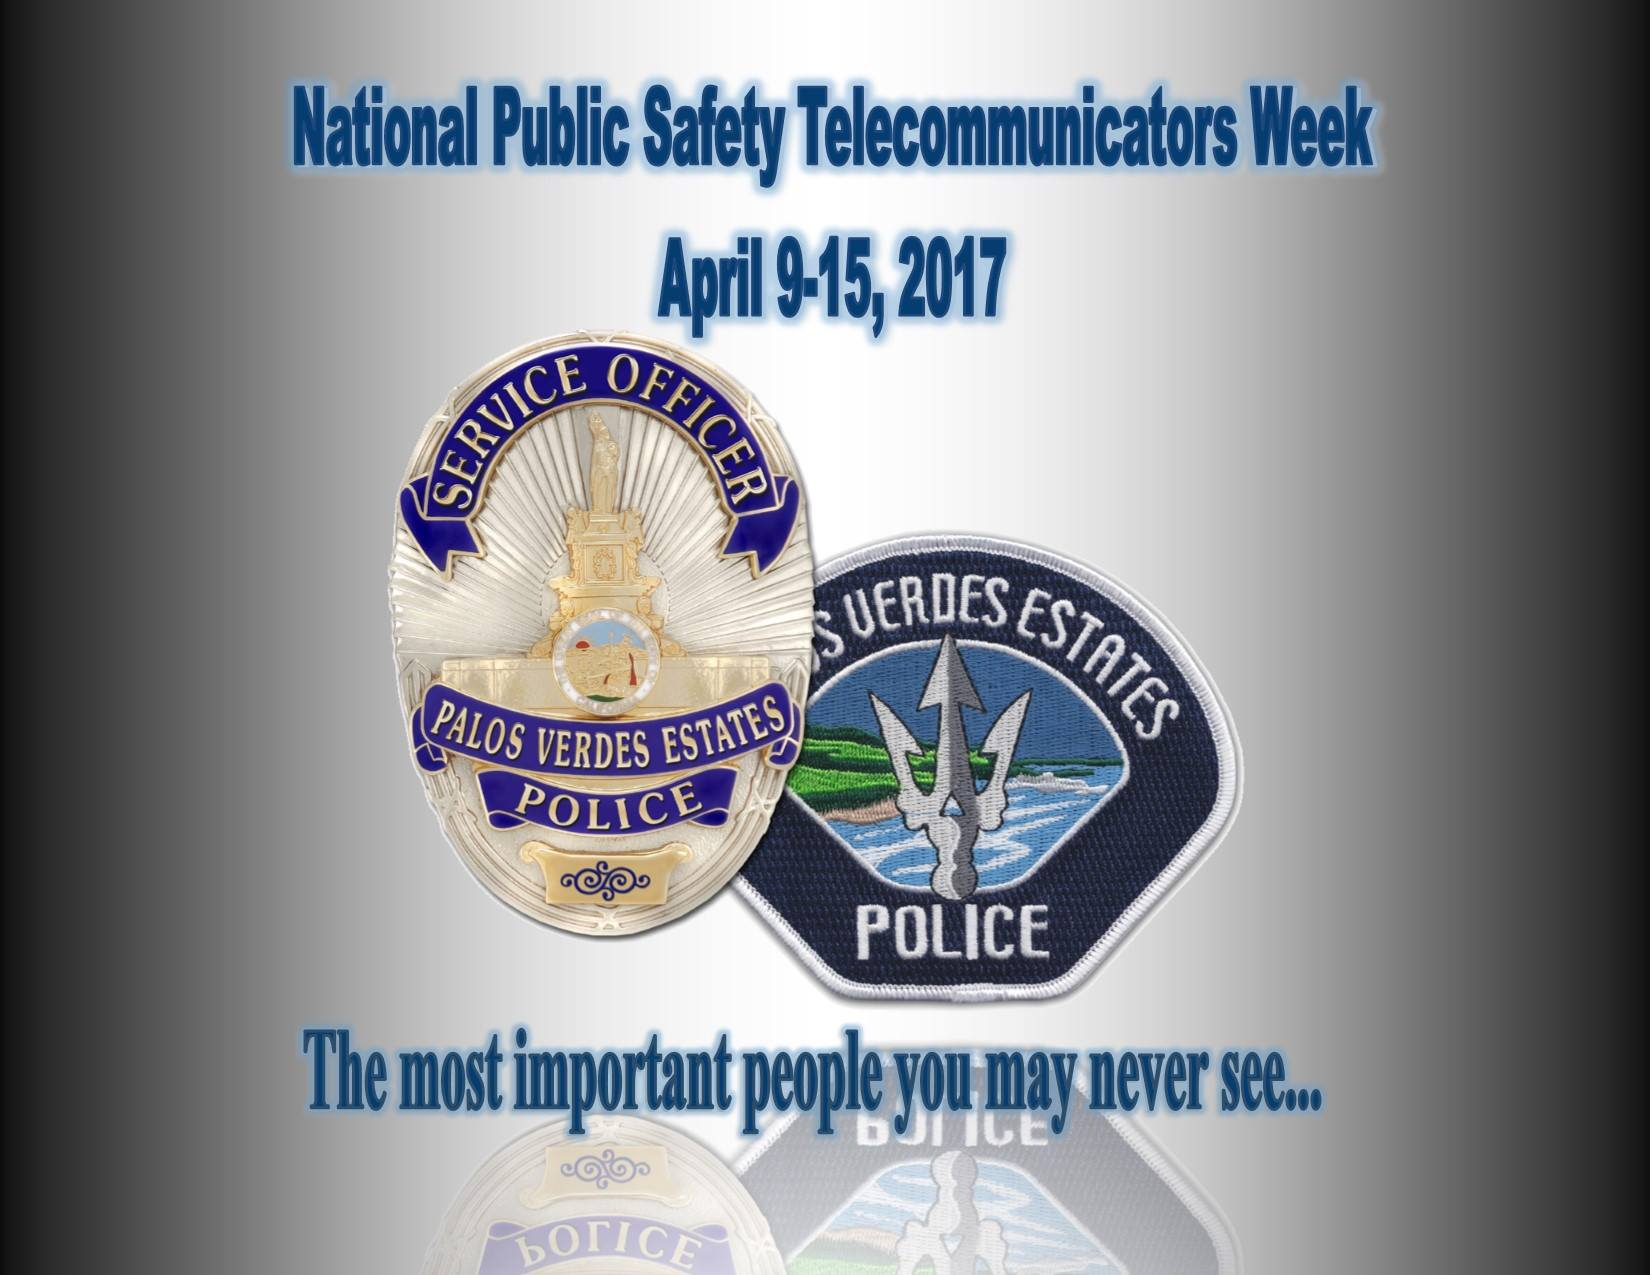 2017 National Public Safety Teleommunications Week